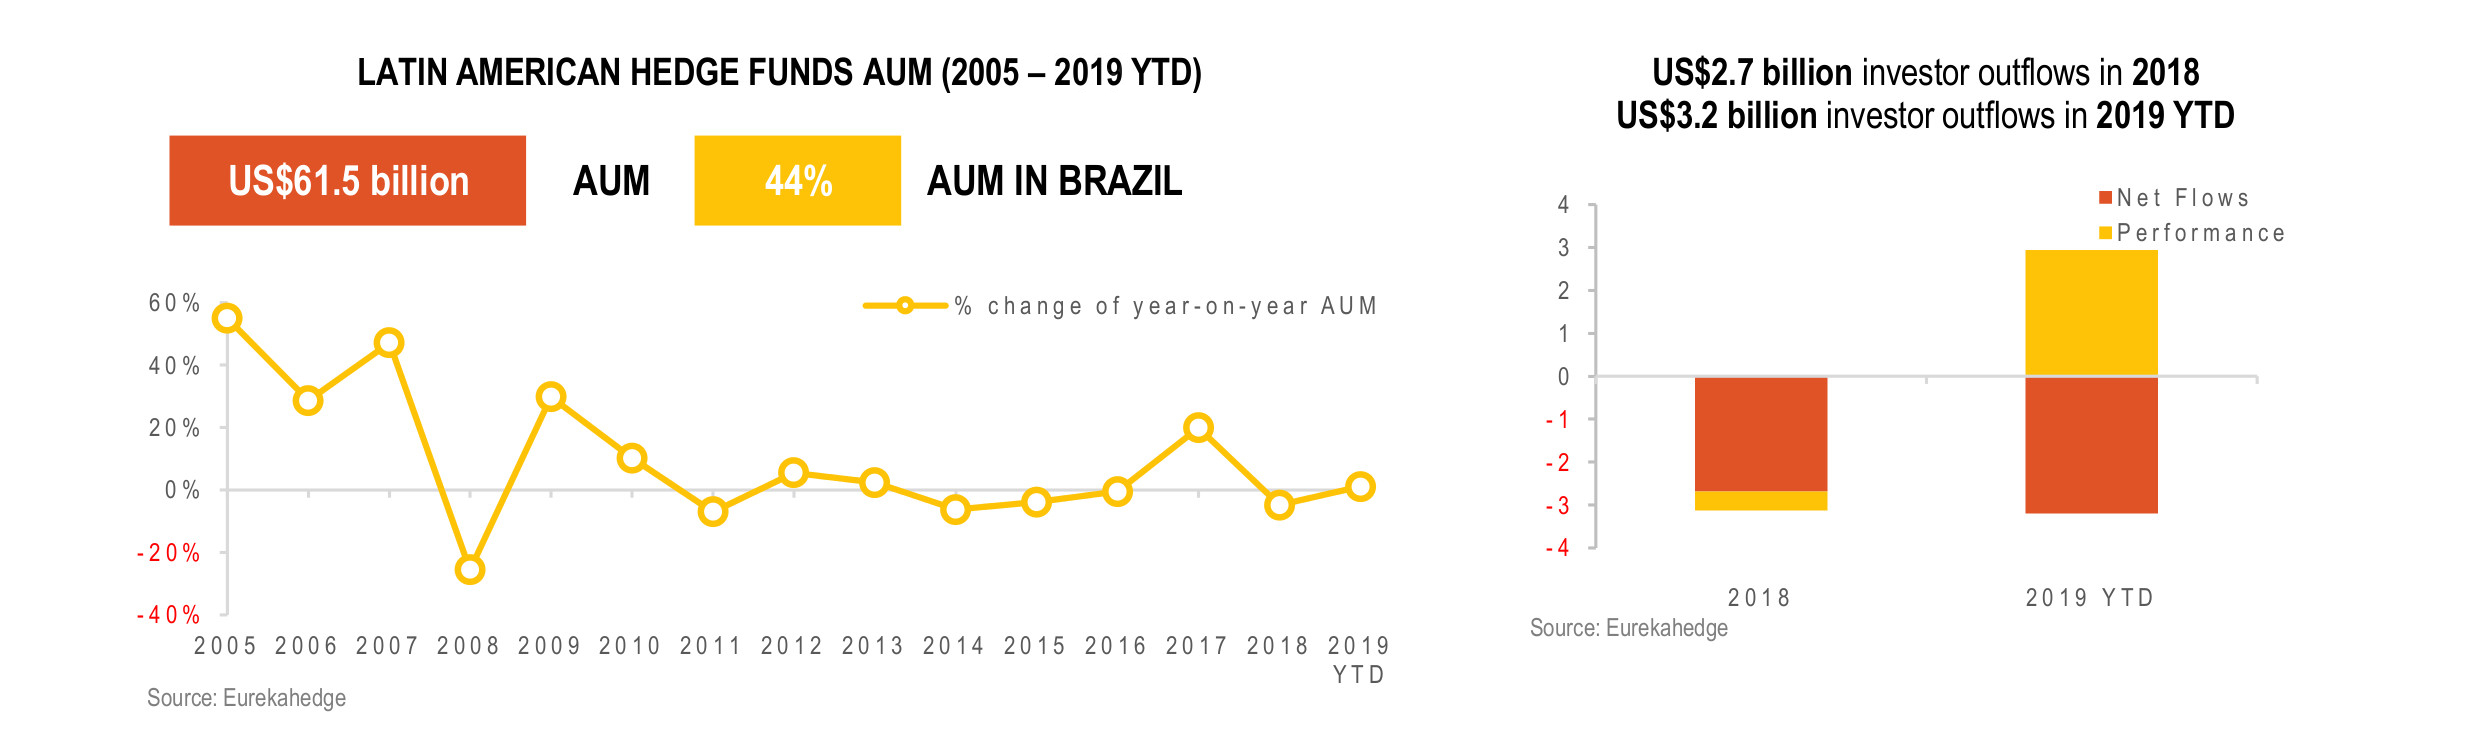 Latin American Hedge Funds Infographic November 2019 - AUM